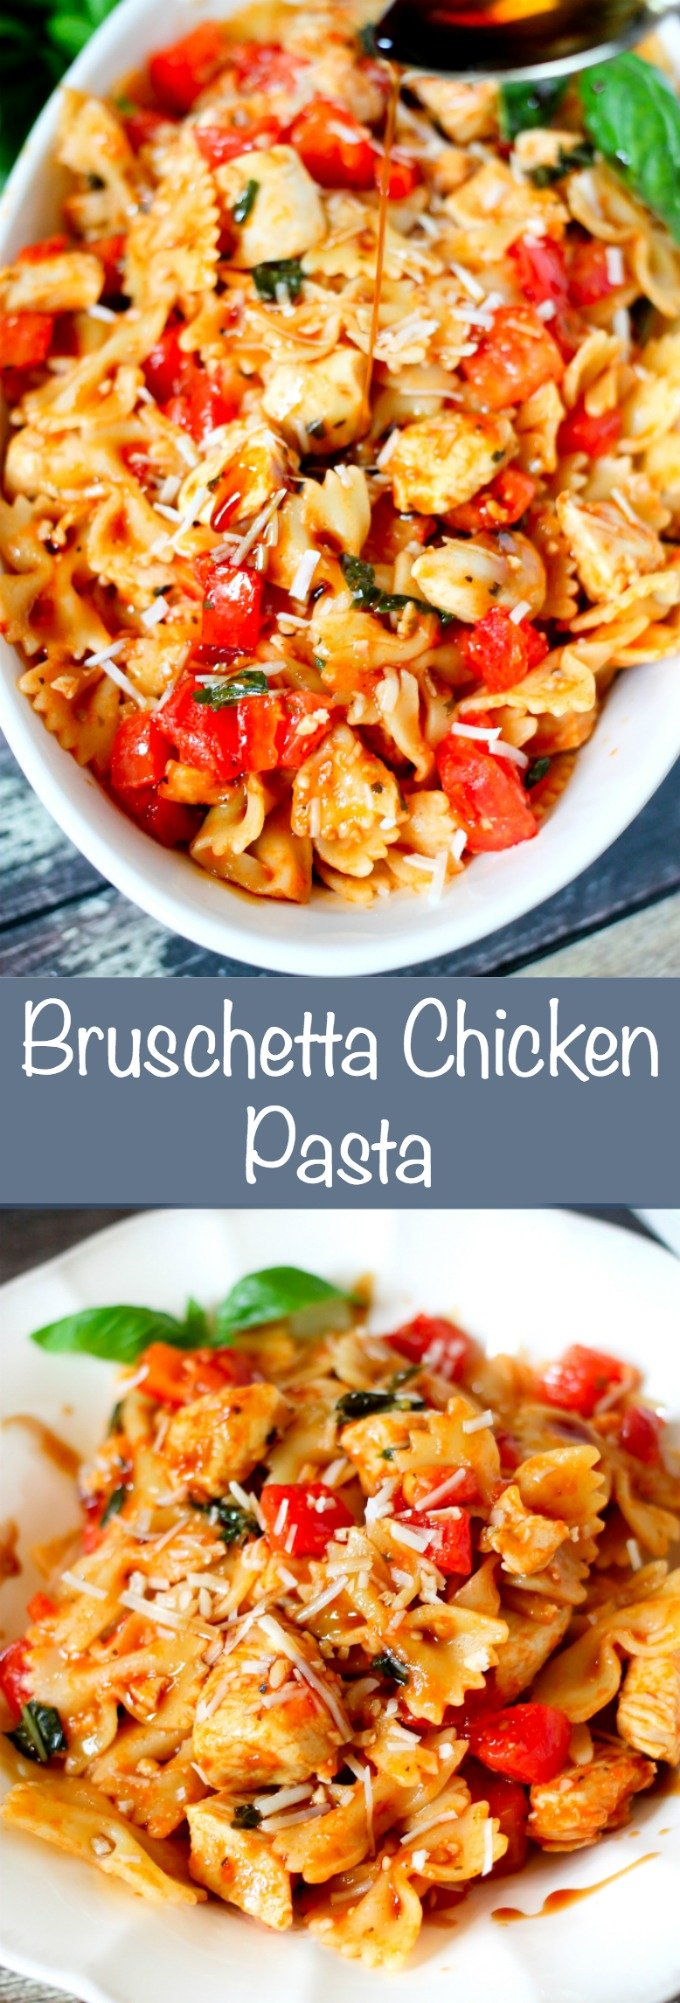 Bruschetta chicken pasta is loaded with fresh tomatoes, basil, and juicy chicken. Adding a secret ingredient at the end, takes this dish to the next level!